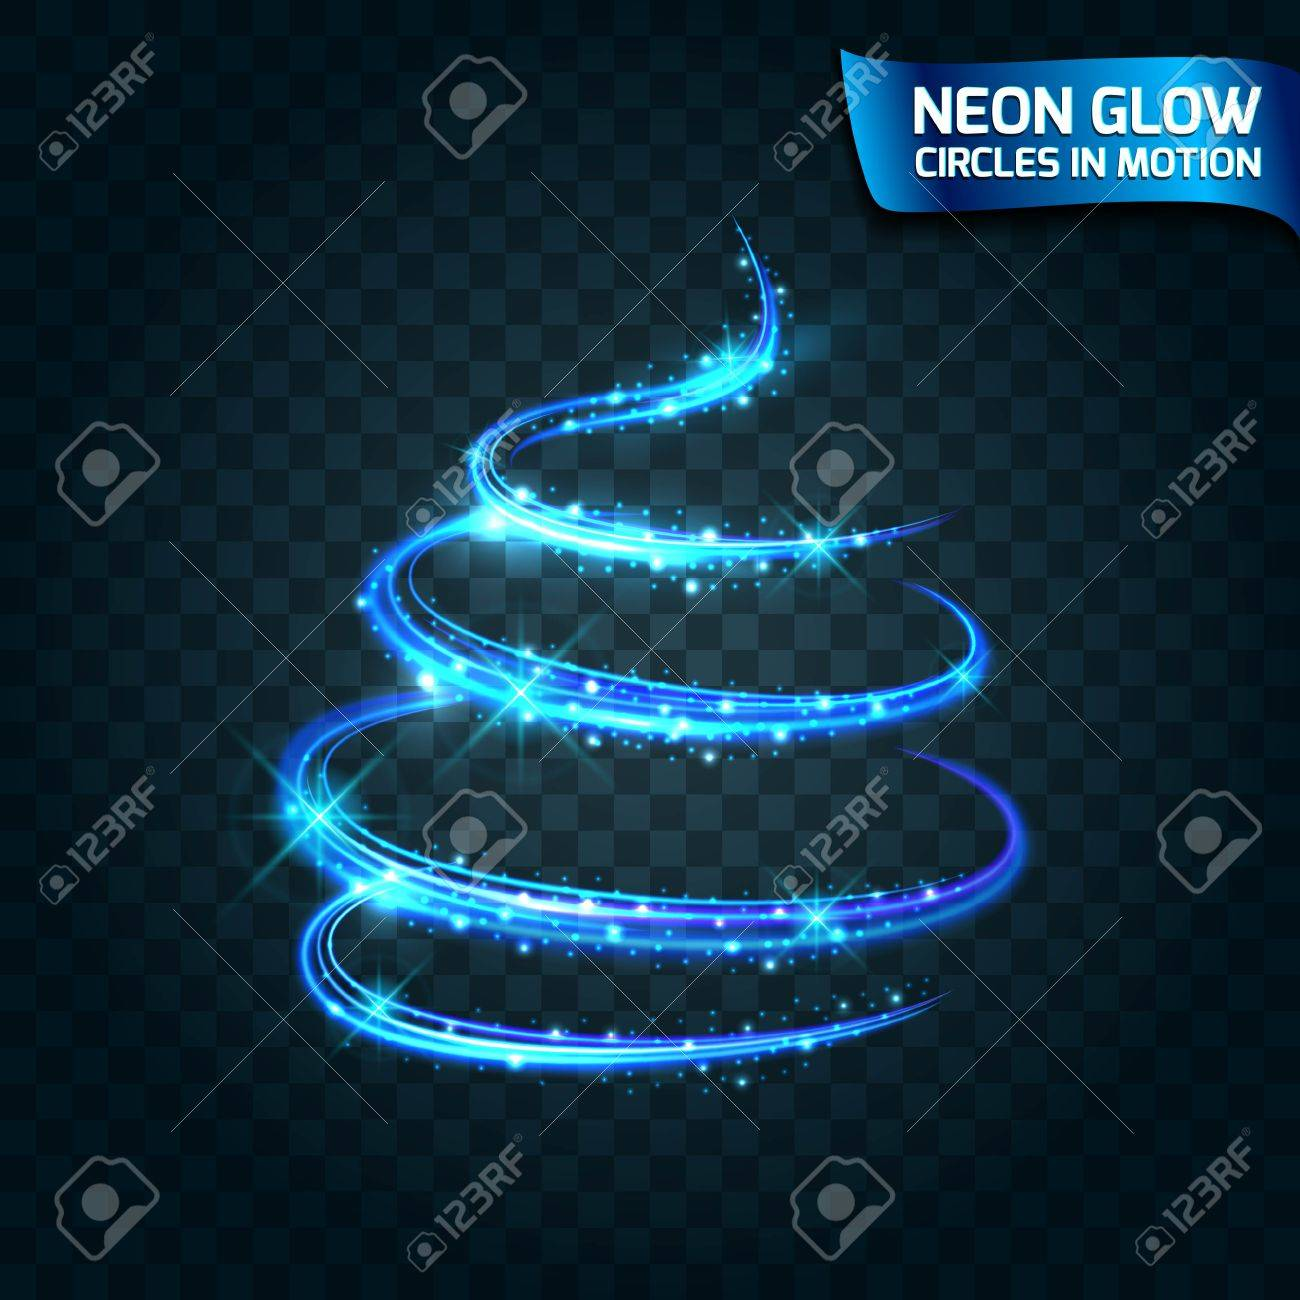 Holiday Lights In Abstract Slow Shutter >> Neon Glow Circles In Motion Blurred Edges Bright Glow Glare Glow